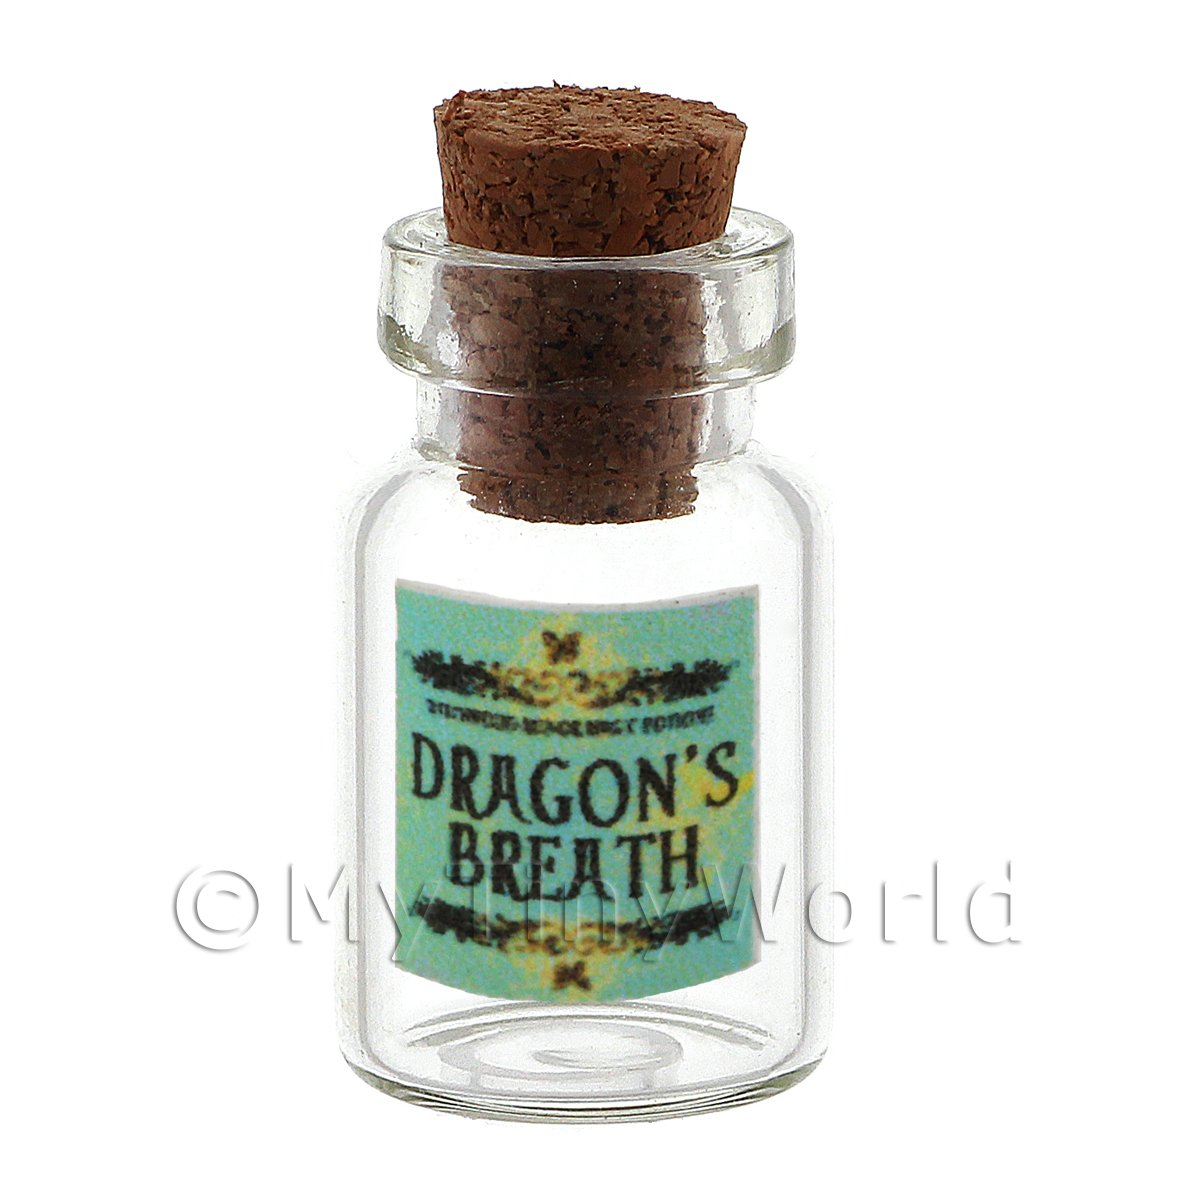 Dolls House Miniature Dragons Breath Magic Storage Jar